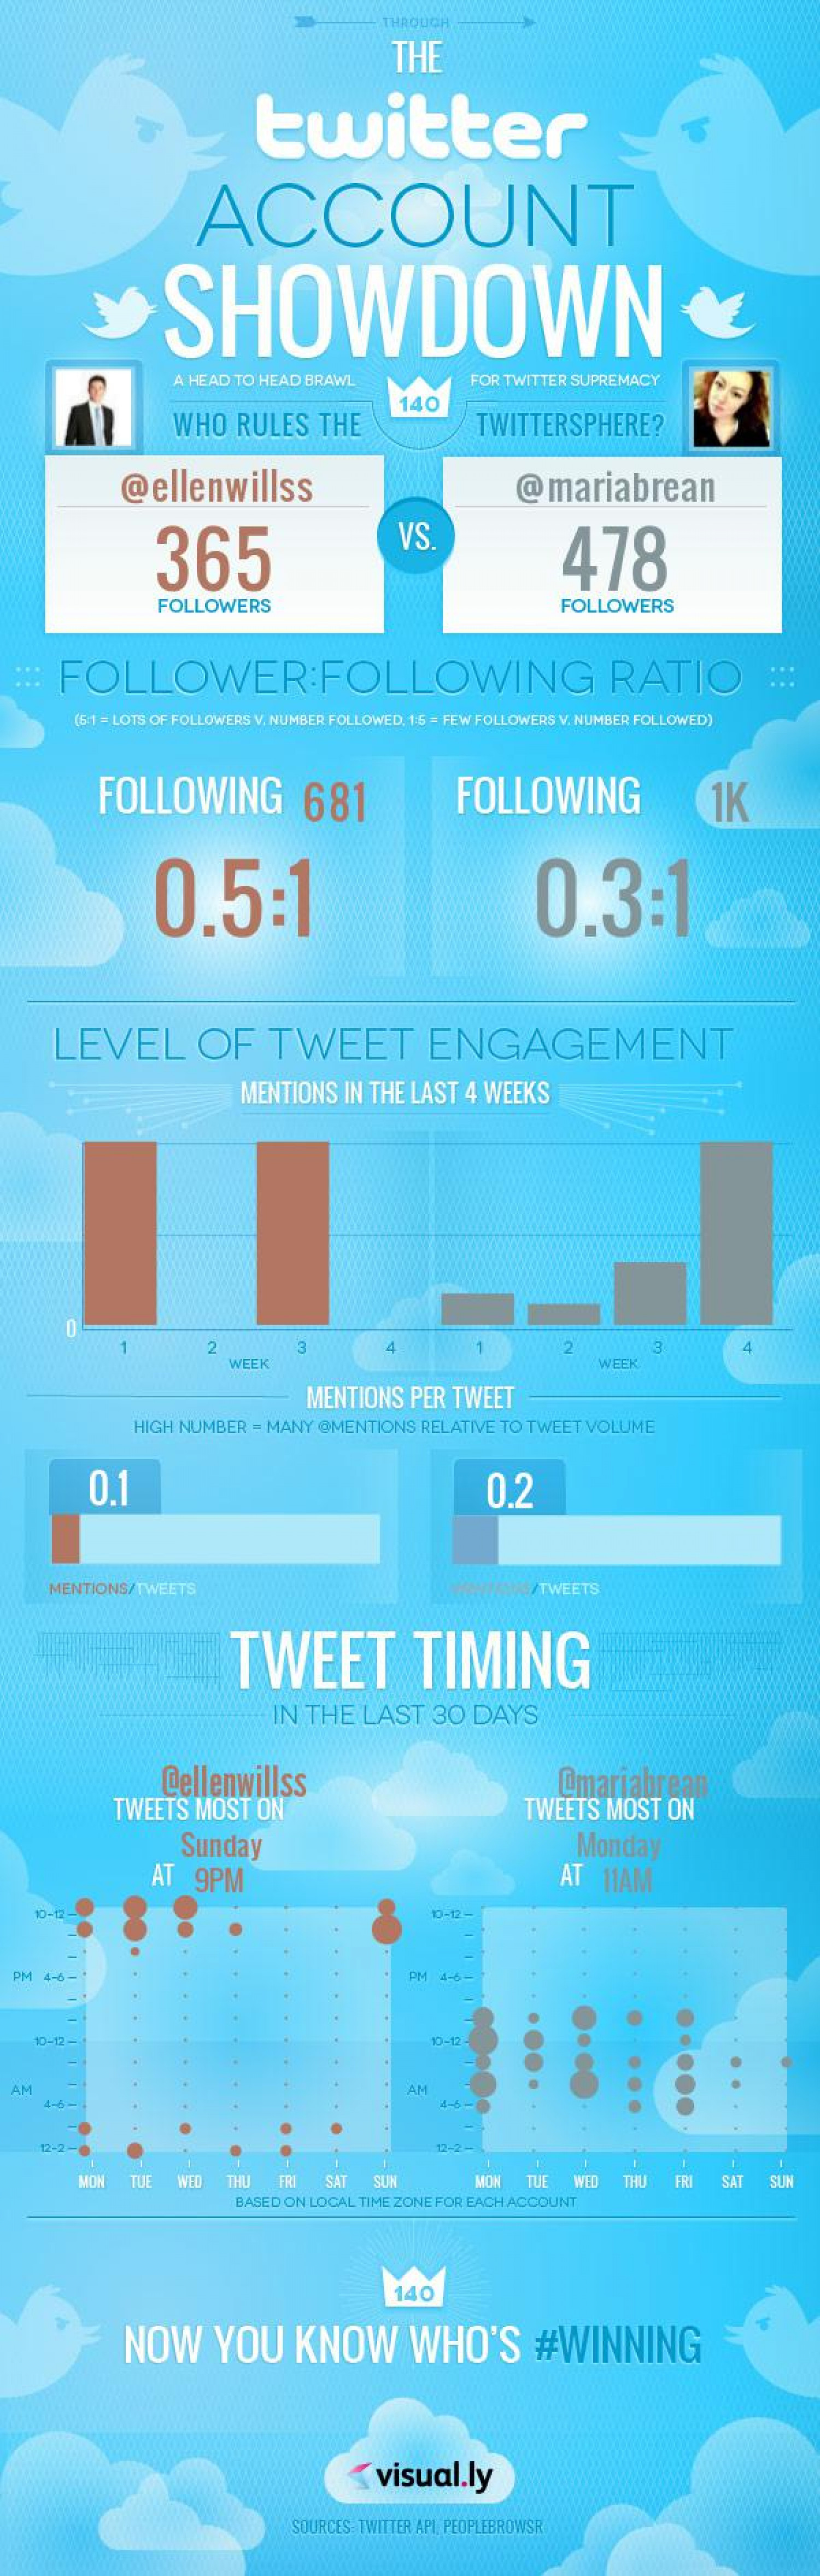 Twitter Account Comparison By Maria and Ellen Infographic